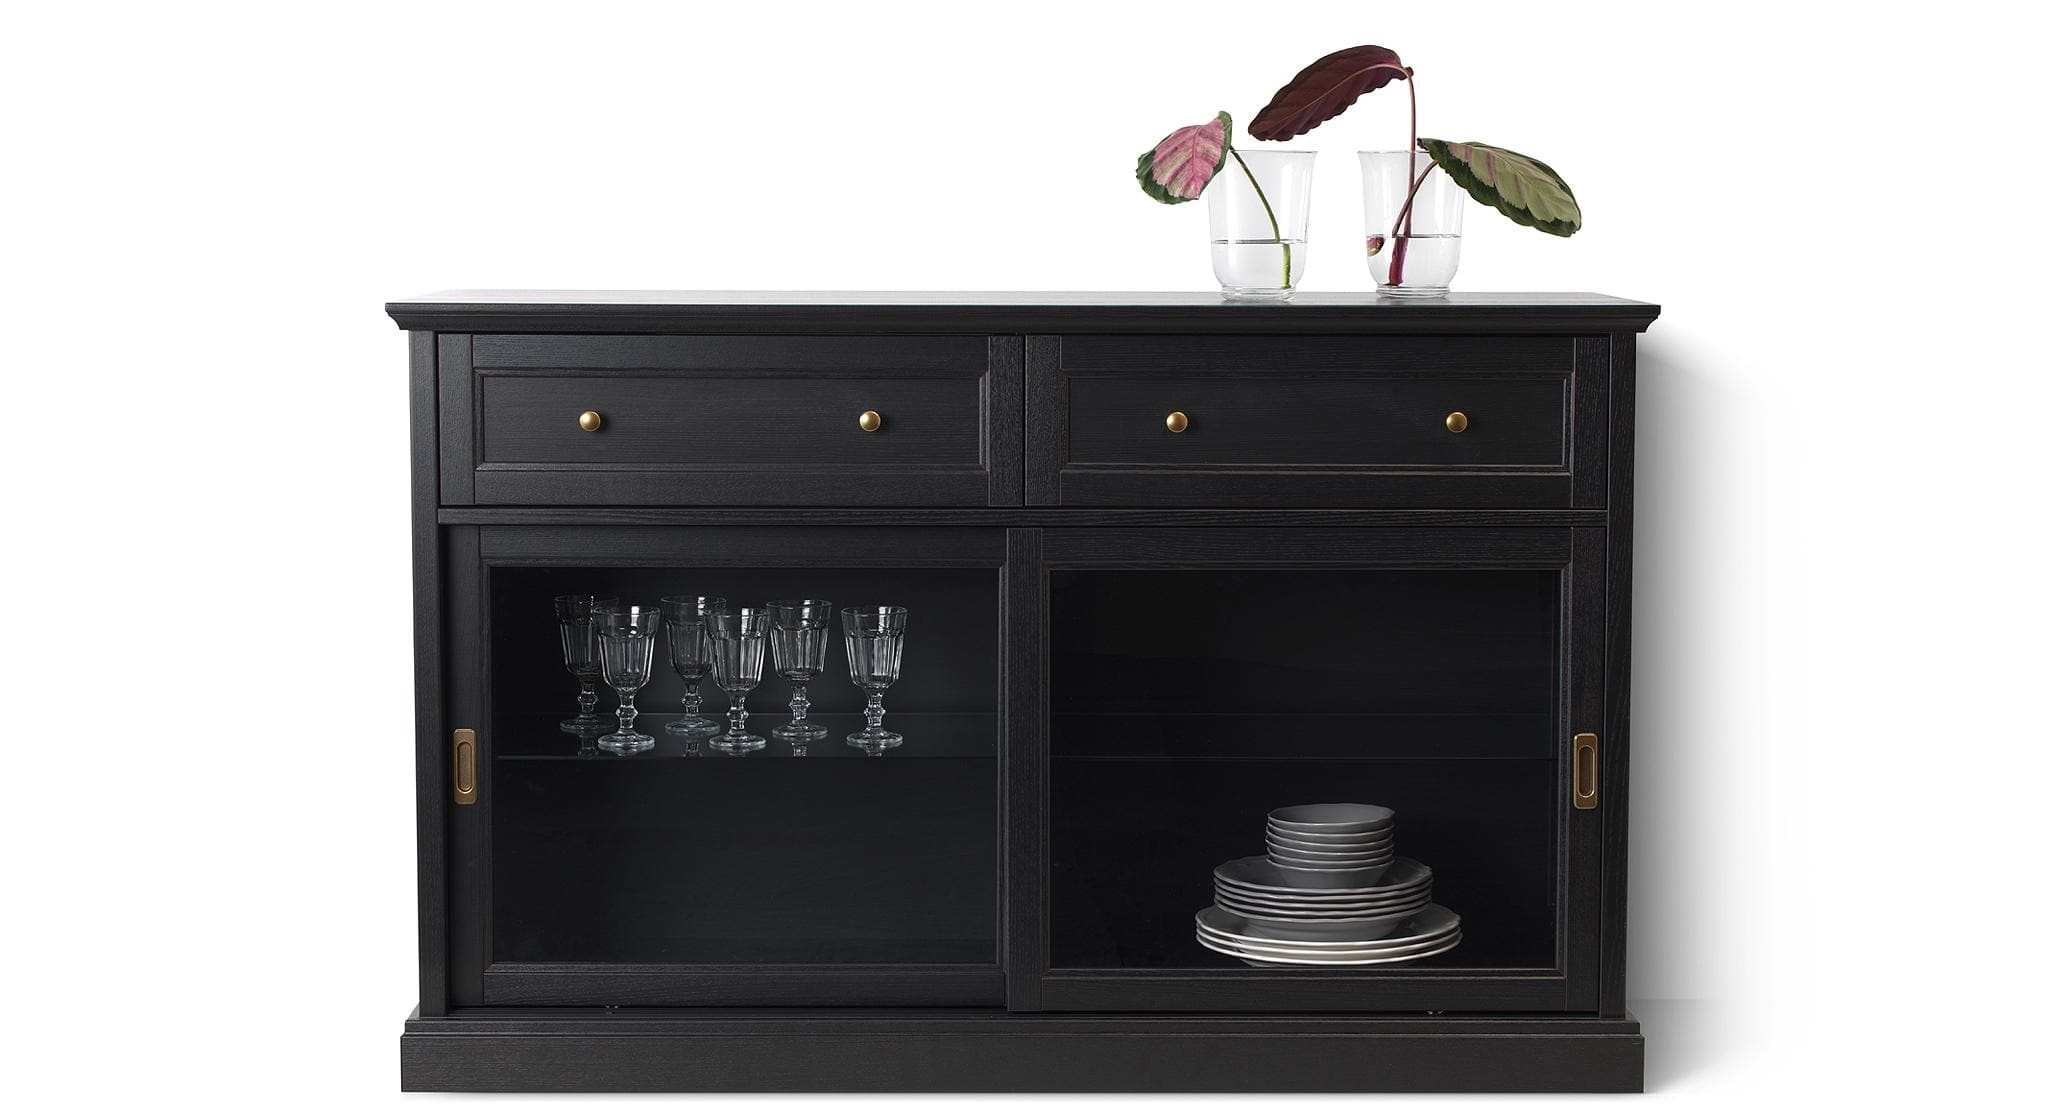 Sideboards & Buffet Cabinets | Ikea with regard to Satin Black & Painted White Sideboards (Image 24 of 30)